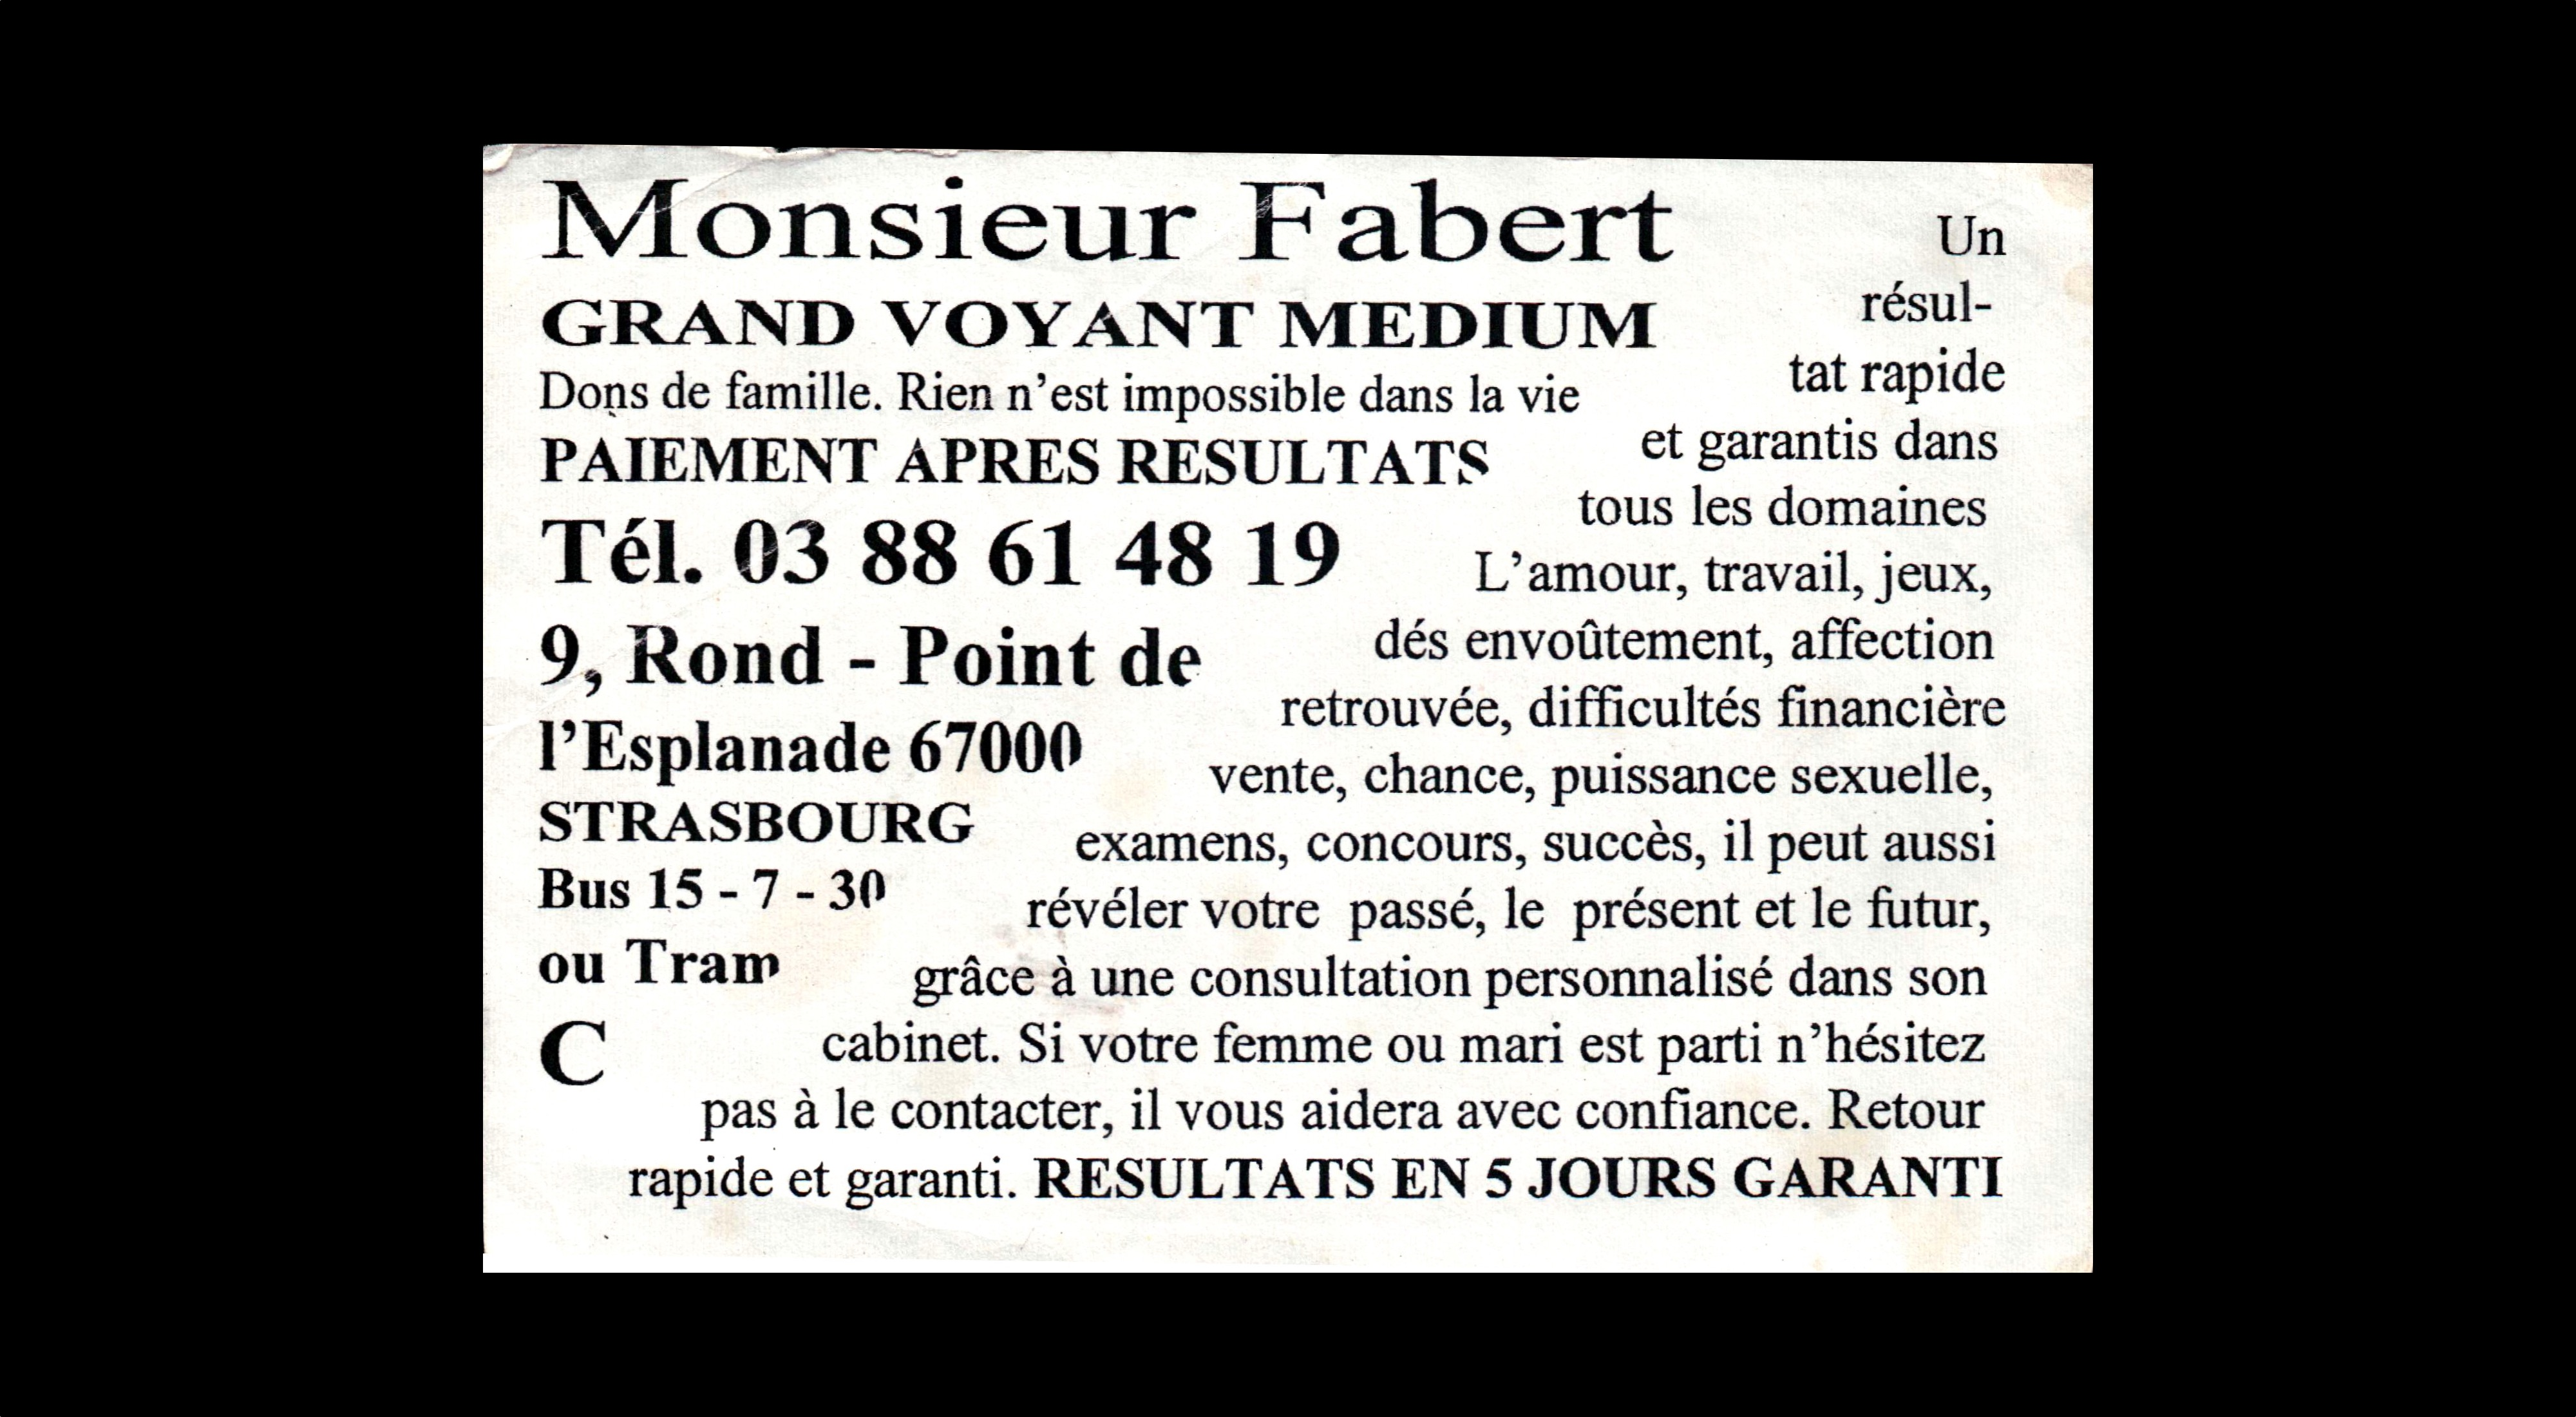 card of Monsieur Fabert